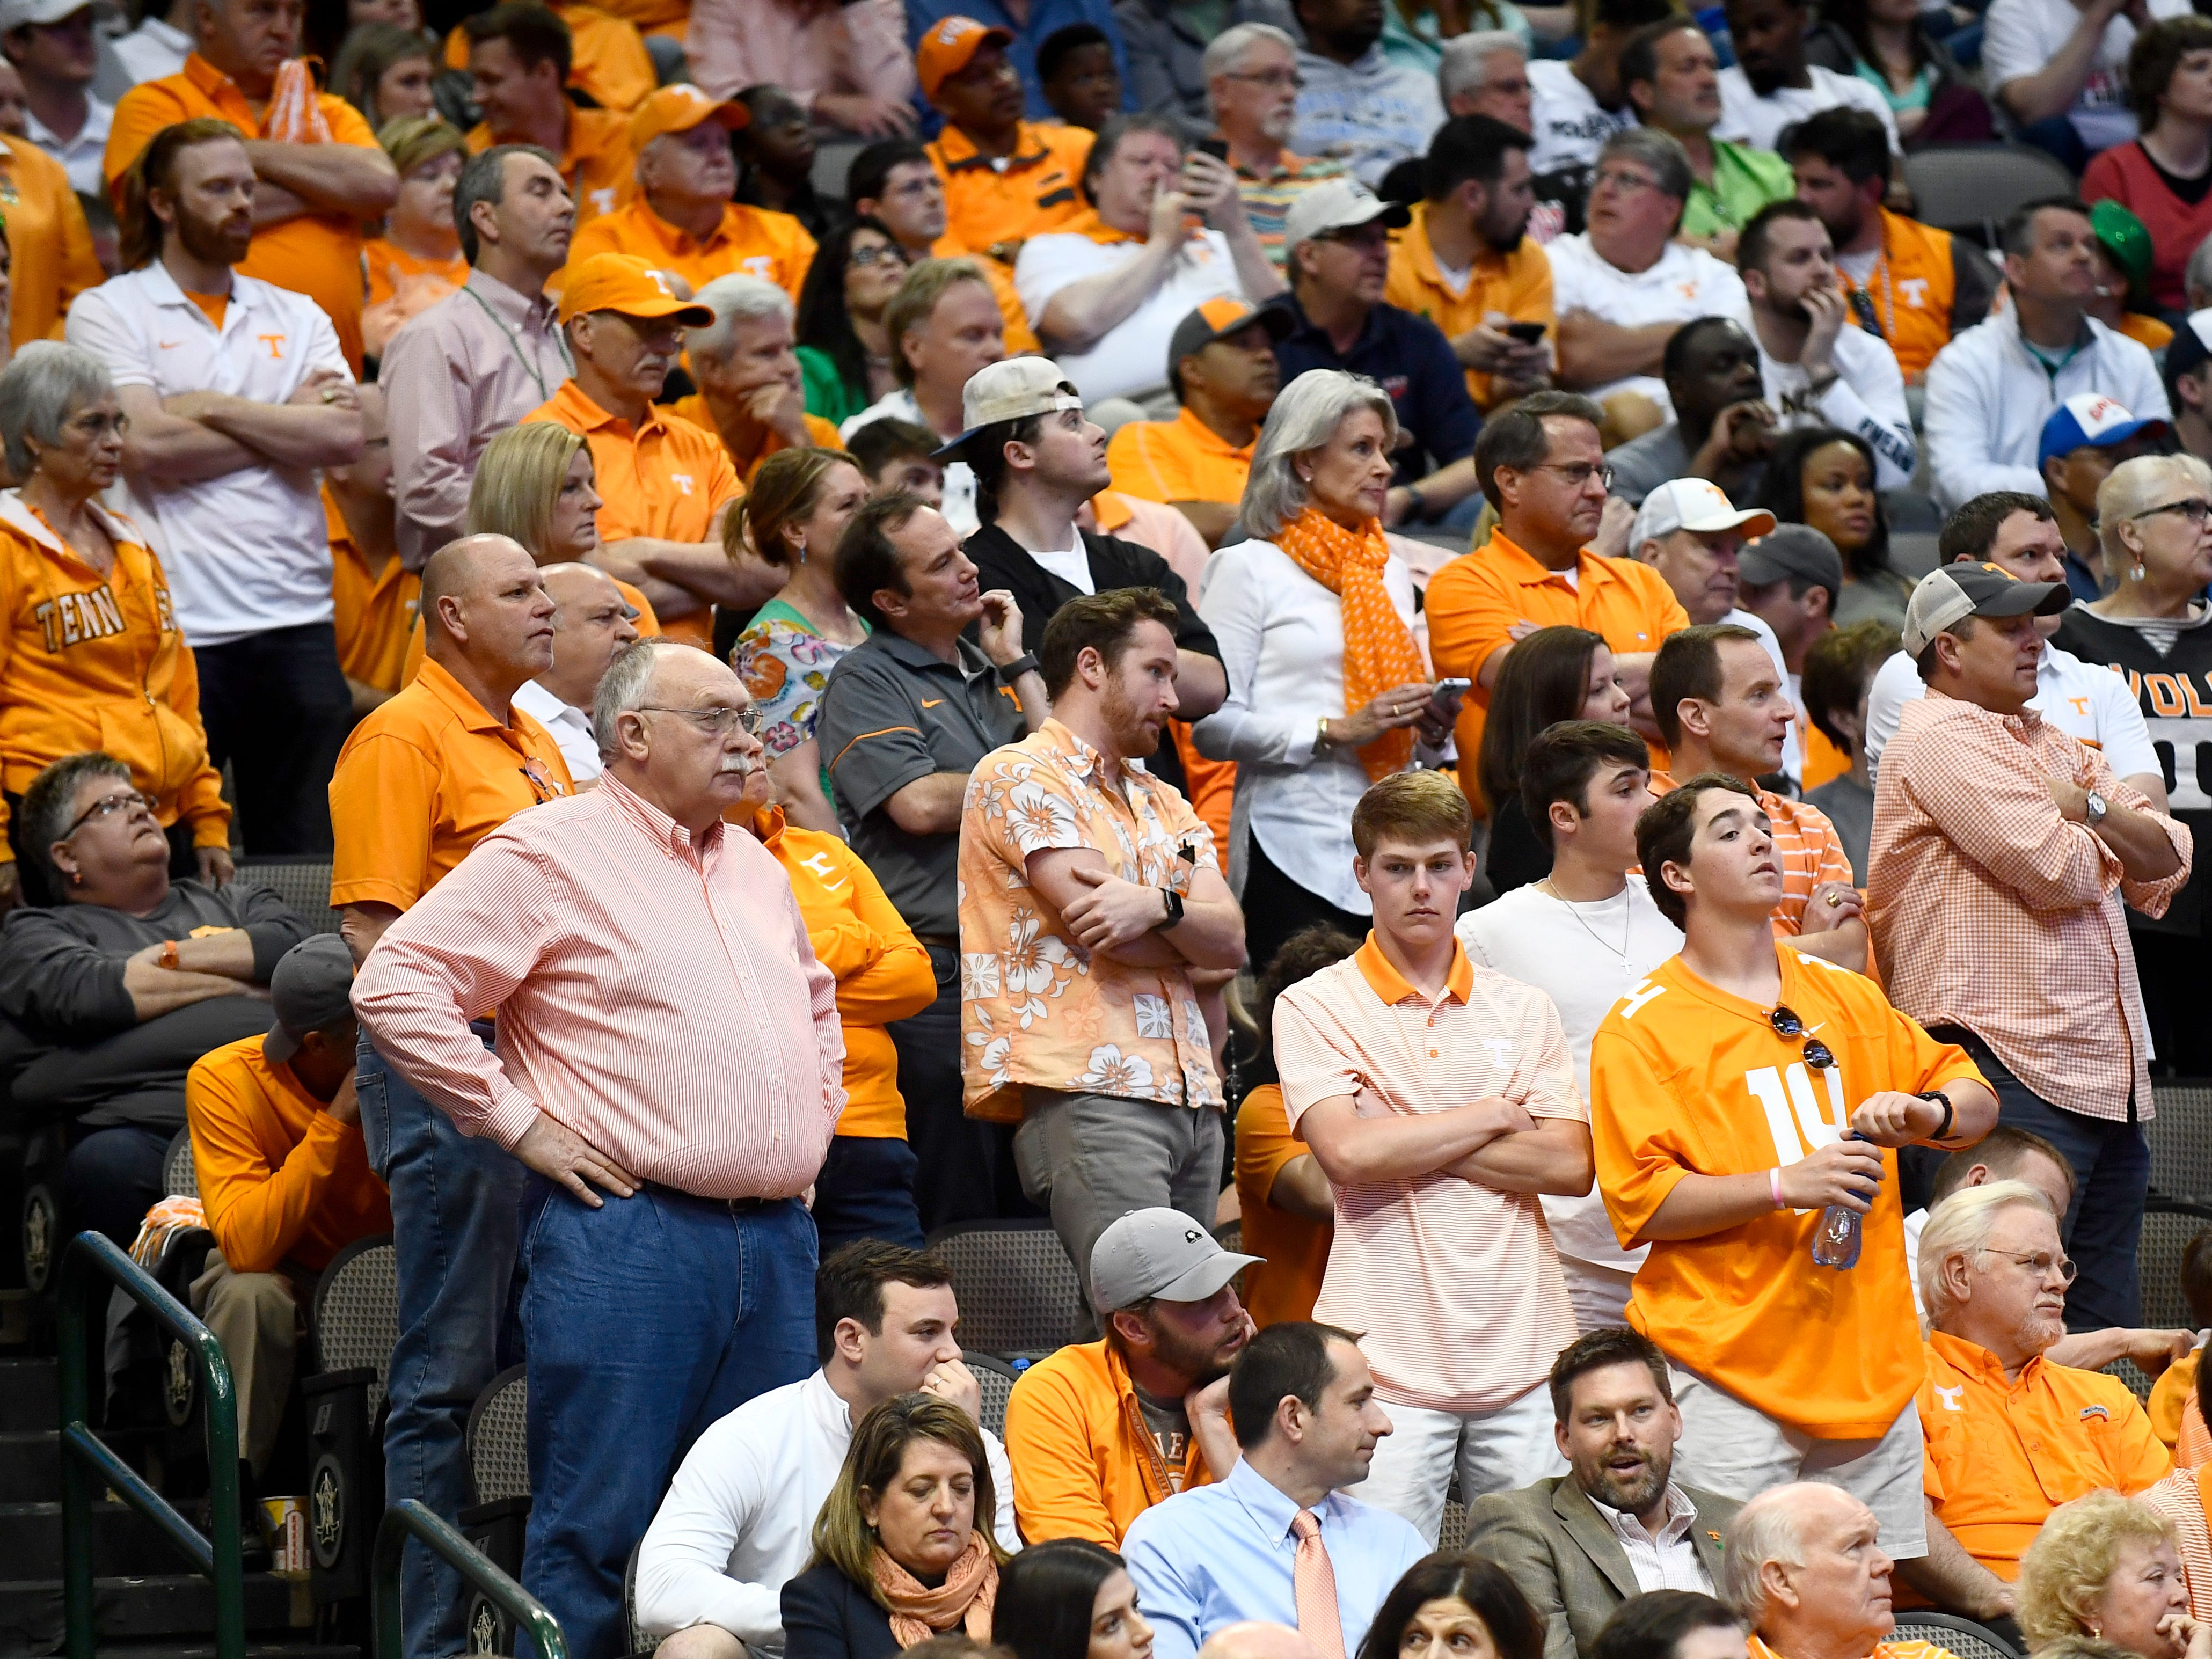 Tennessee fans react during the NCAA Tournament second round game between Tennessee and Loyola-Chicago at American Airlines Center in Dallas, Texas, on Saturday, March 17, 2018.